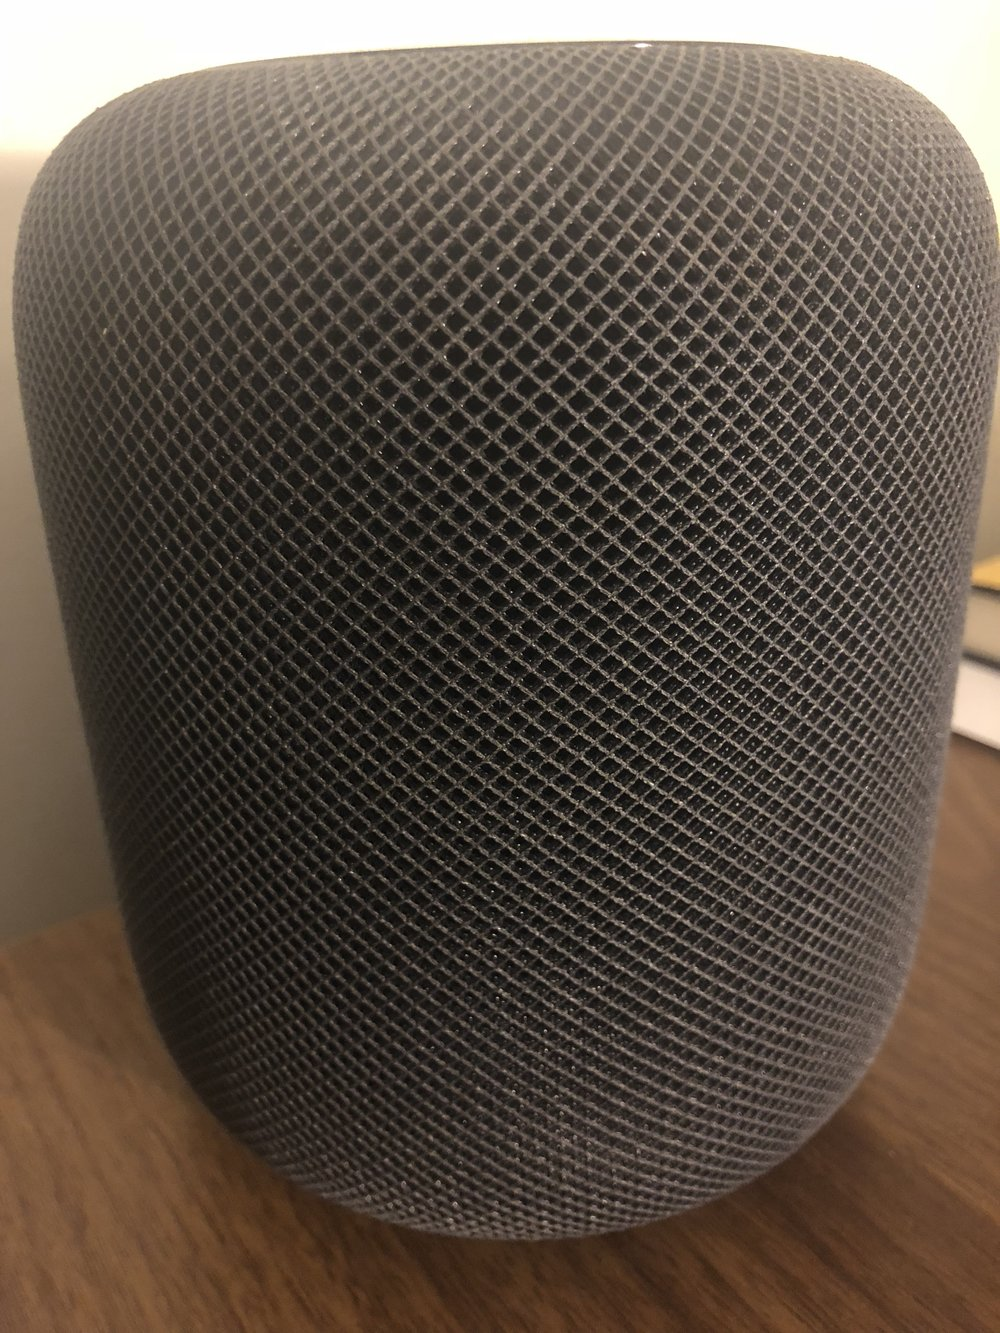 HomePod from the side, showing the side texture.